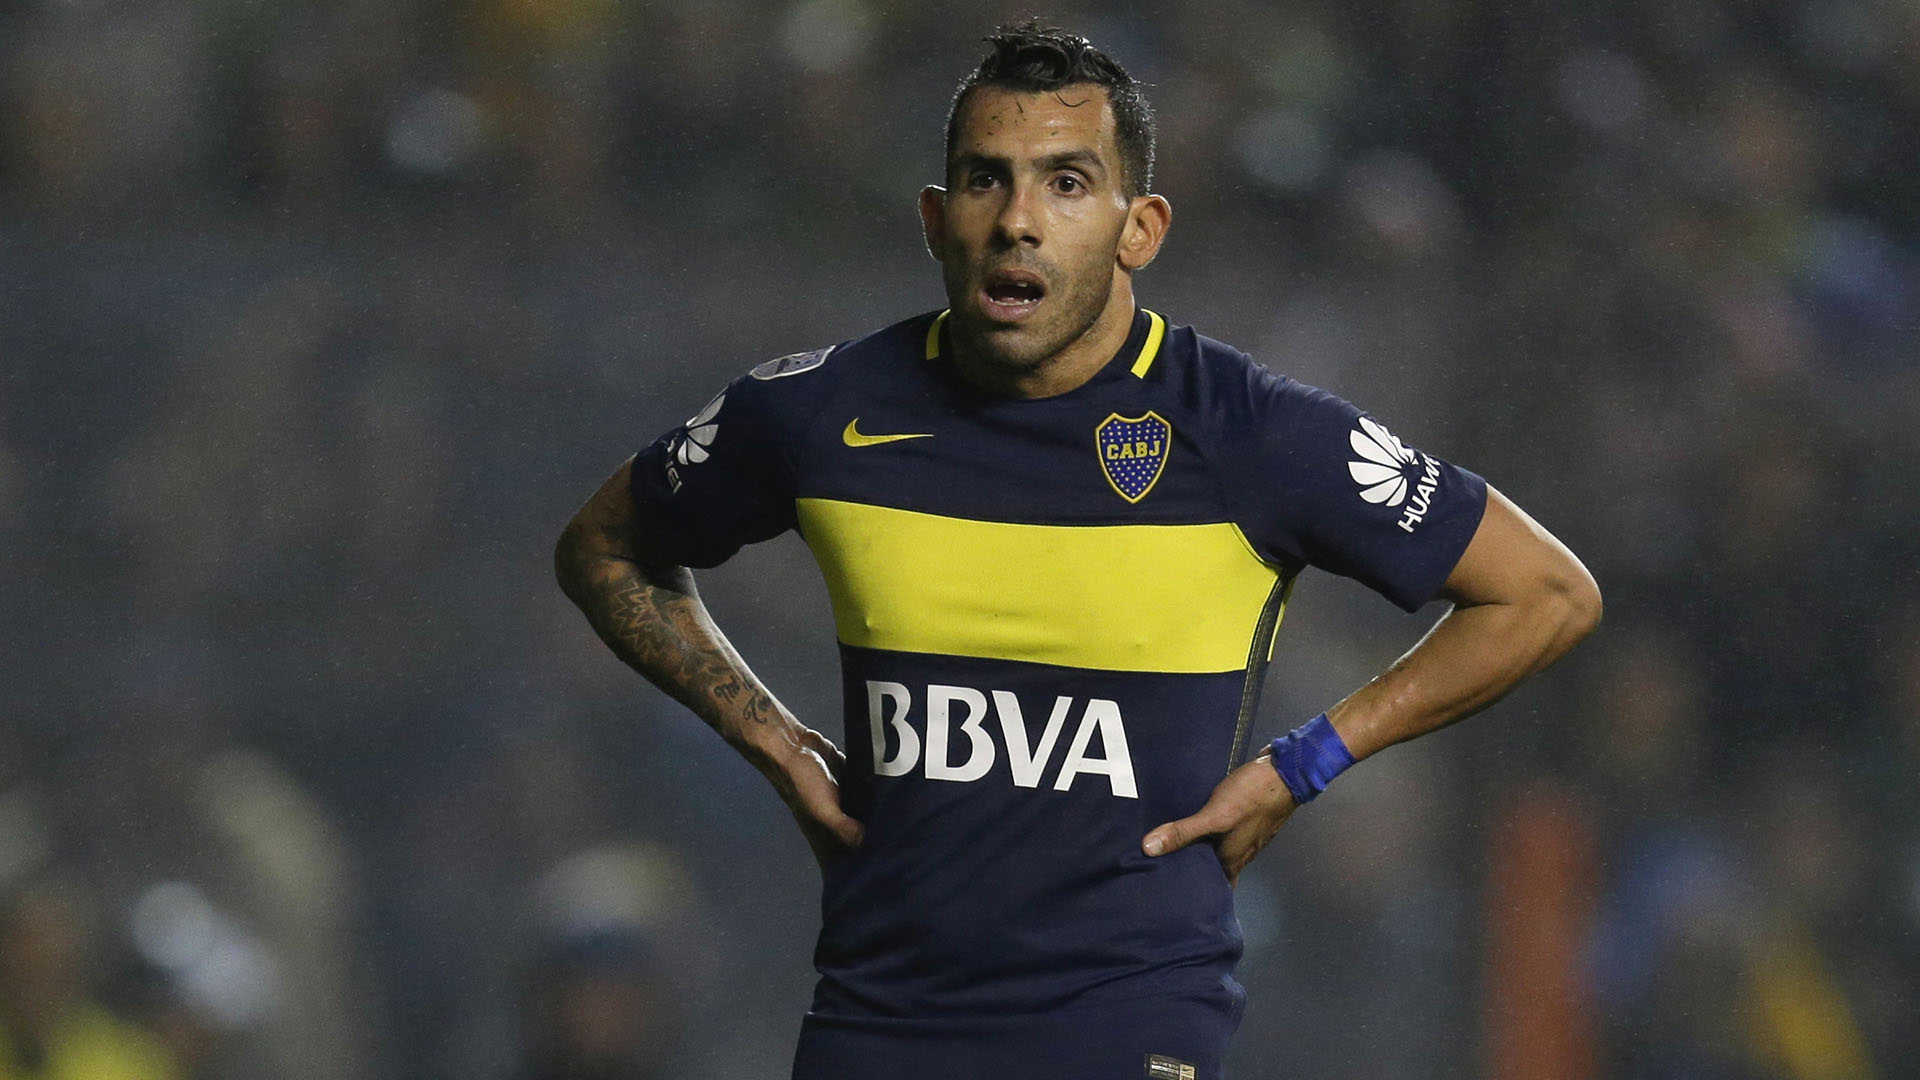 Carlos Tevez of Argentina's Boca Juniors looks on during the Copa Libertadores semifinals soccer match against Ecuador's Independiente del Valle in Buenos Aires, Argentina, Thursday, July 14, 2016.(AP Photo/Natacha Pisarenko)